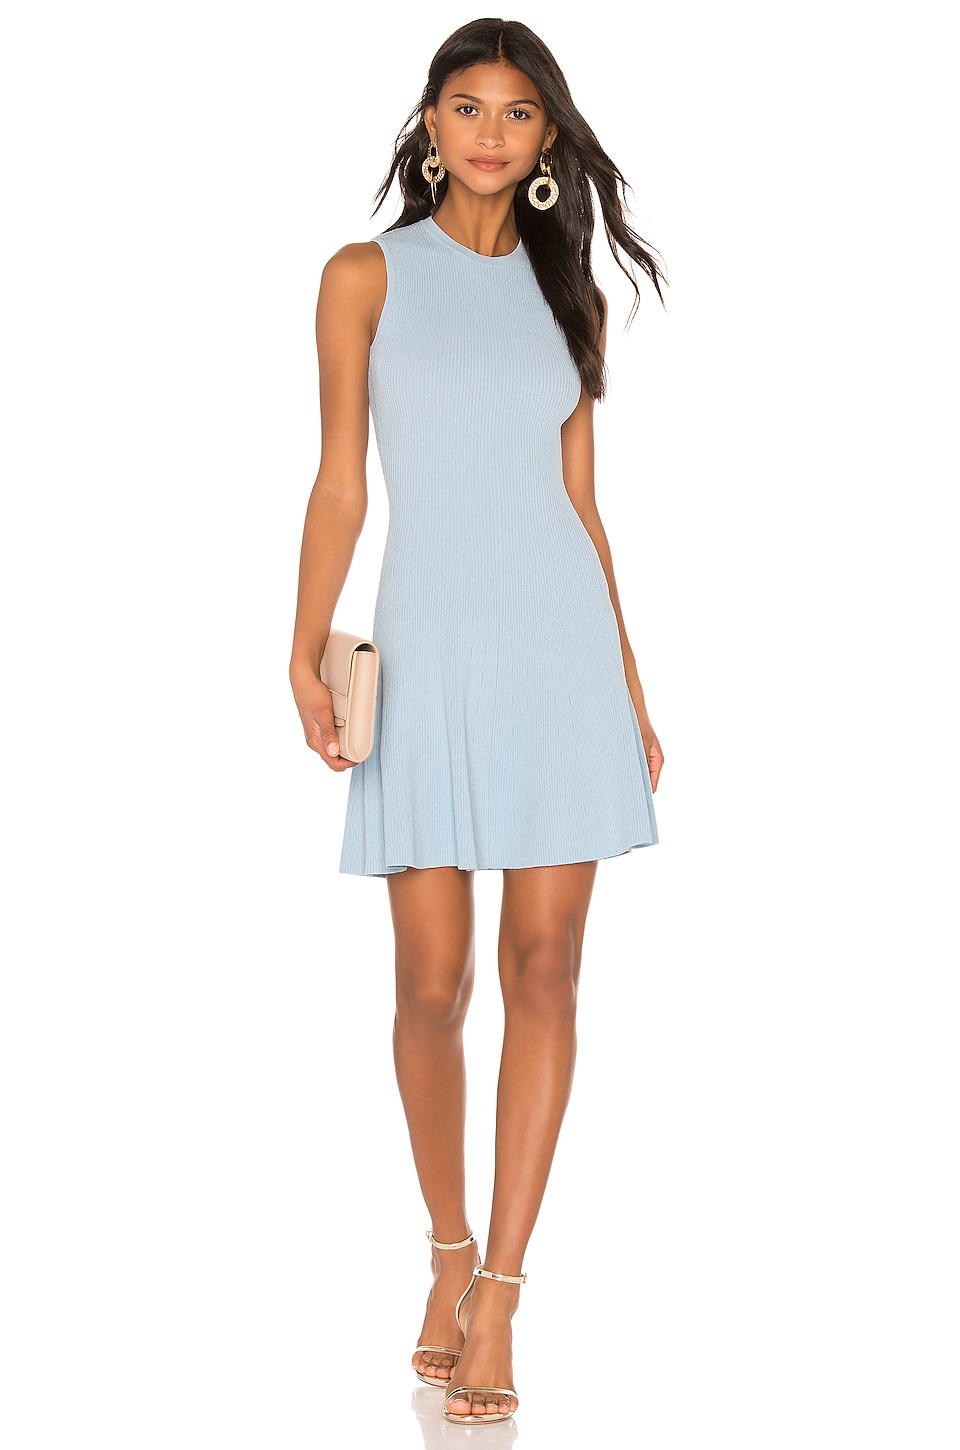 Autumn Cashmere Fit And Flare Dress in Baby Blue